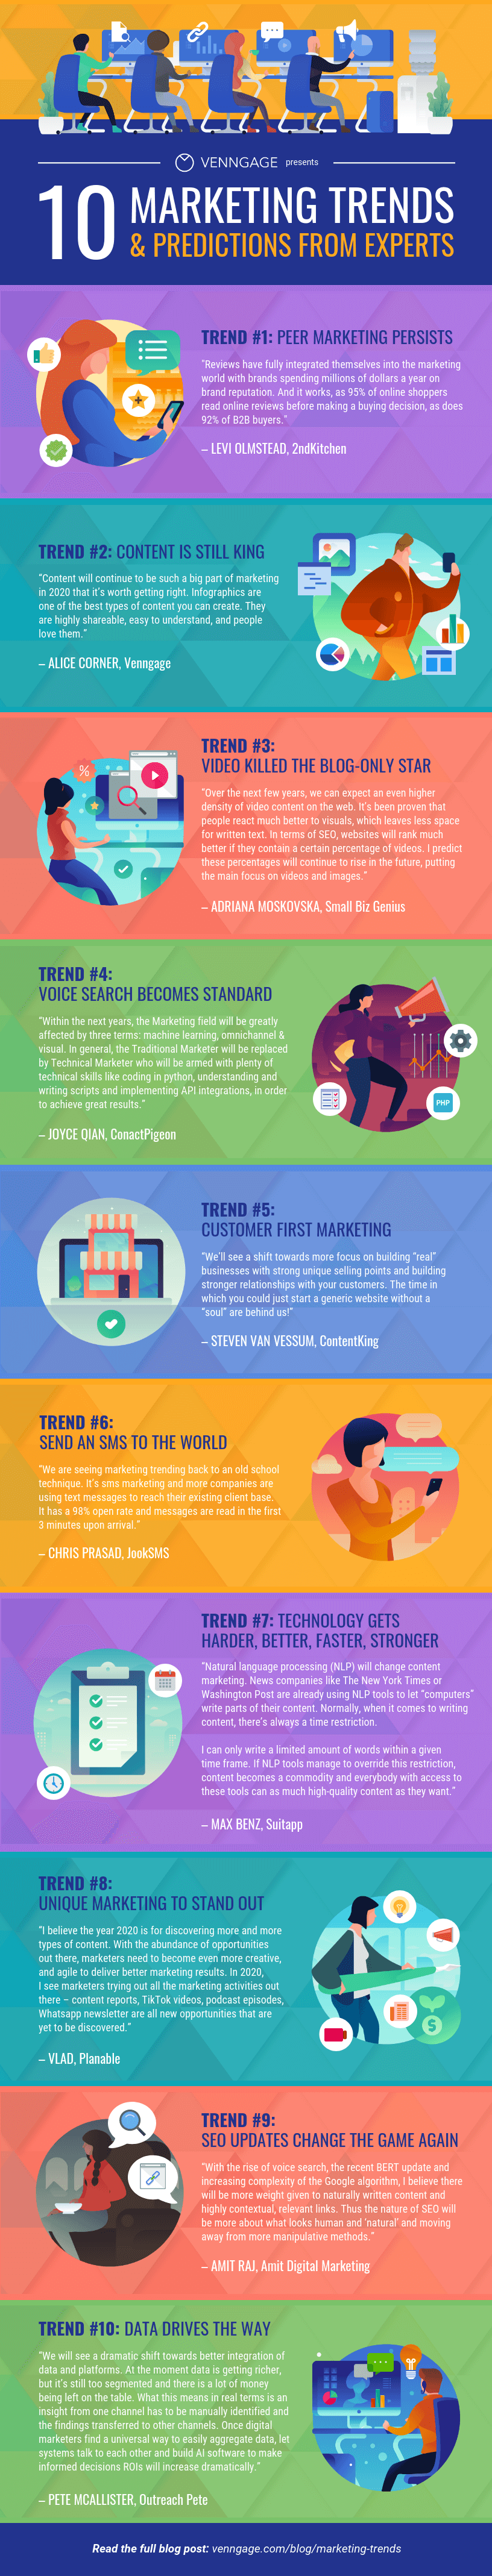 10 Expert Marketing Trends List Infographic Template